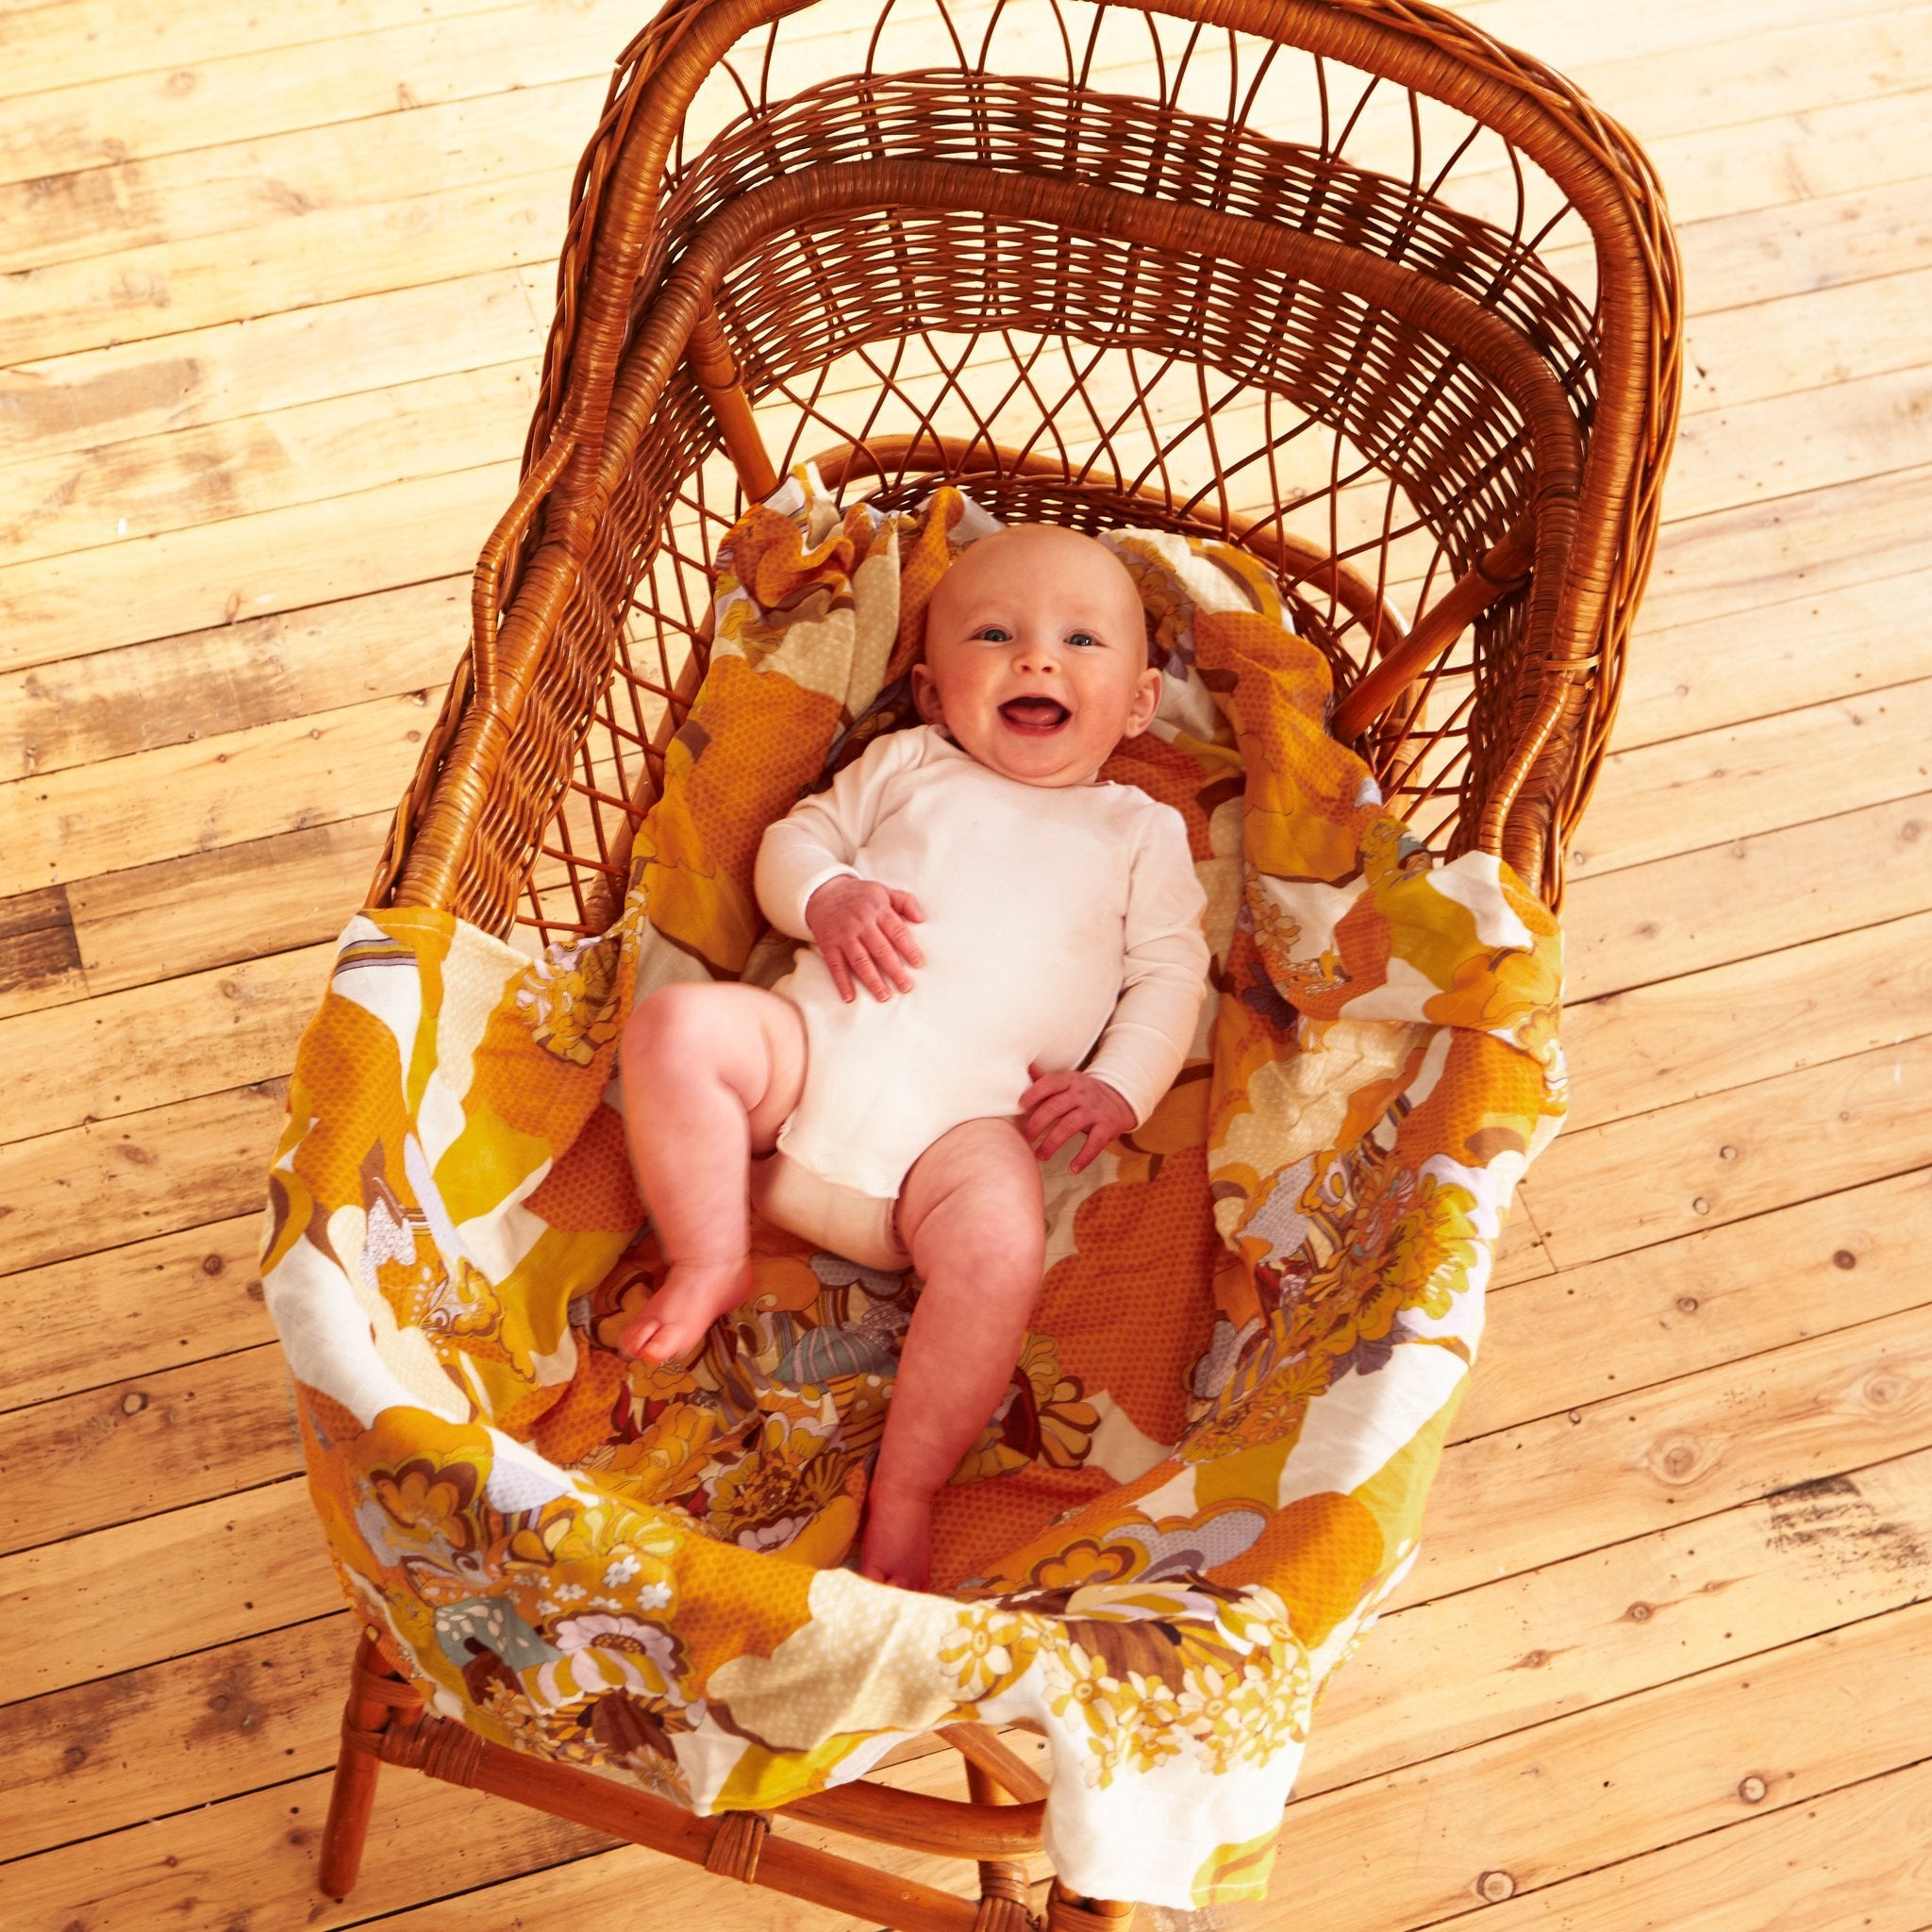 Load image into Gallery viewer, 70s style baby swaddles from banabae organic cotton and bamboo fabric